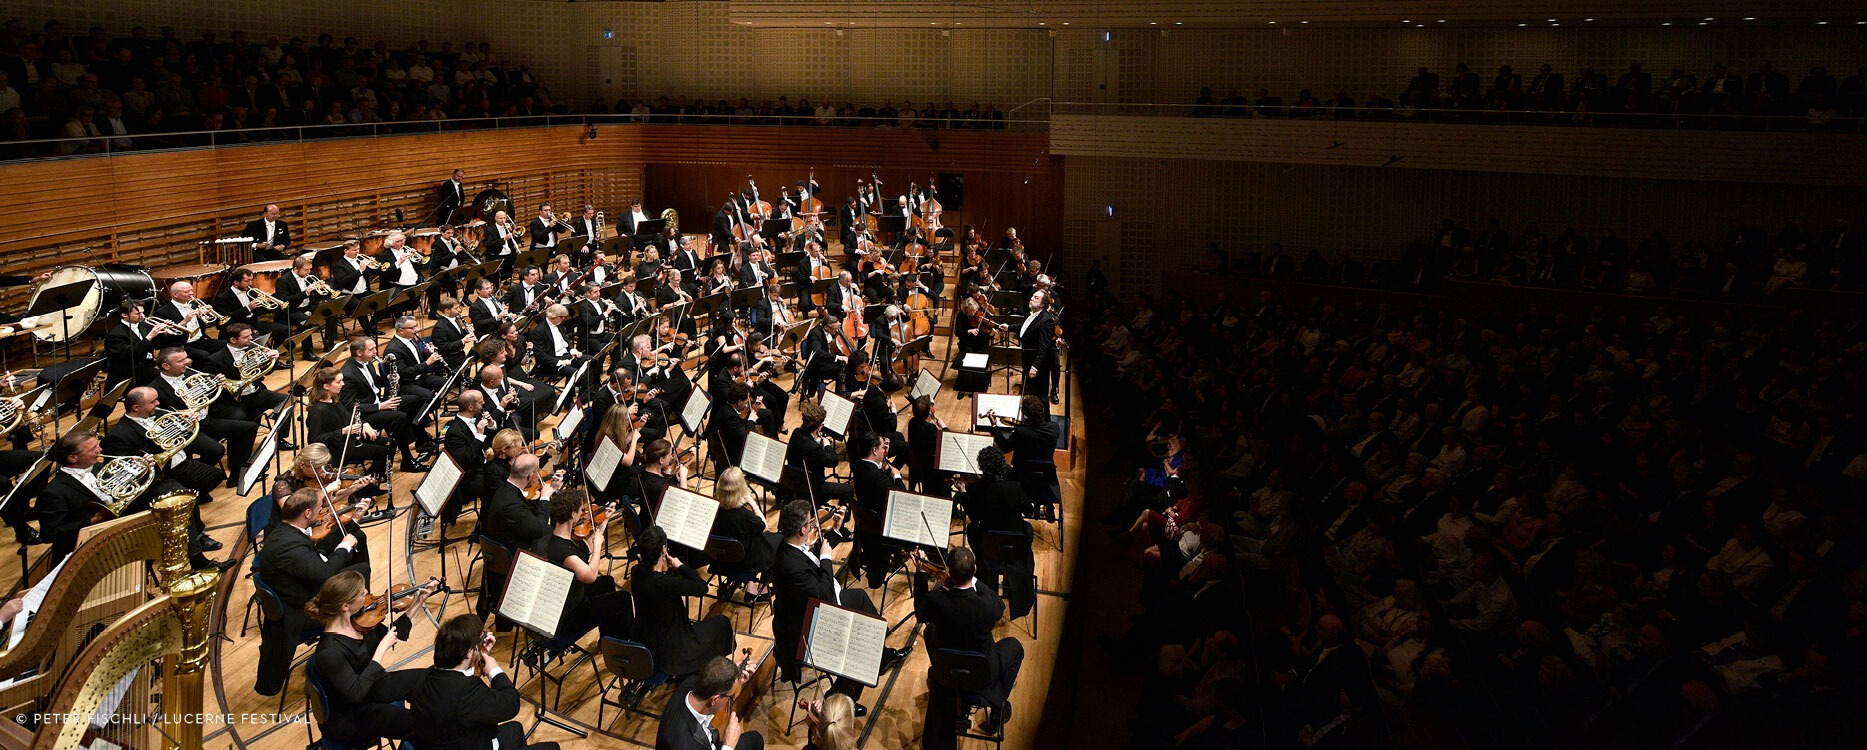 Carl F. Bucherer and the Lucerne Festival Orchestra